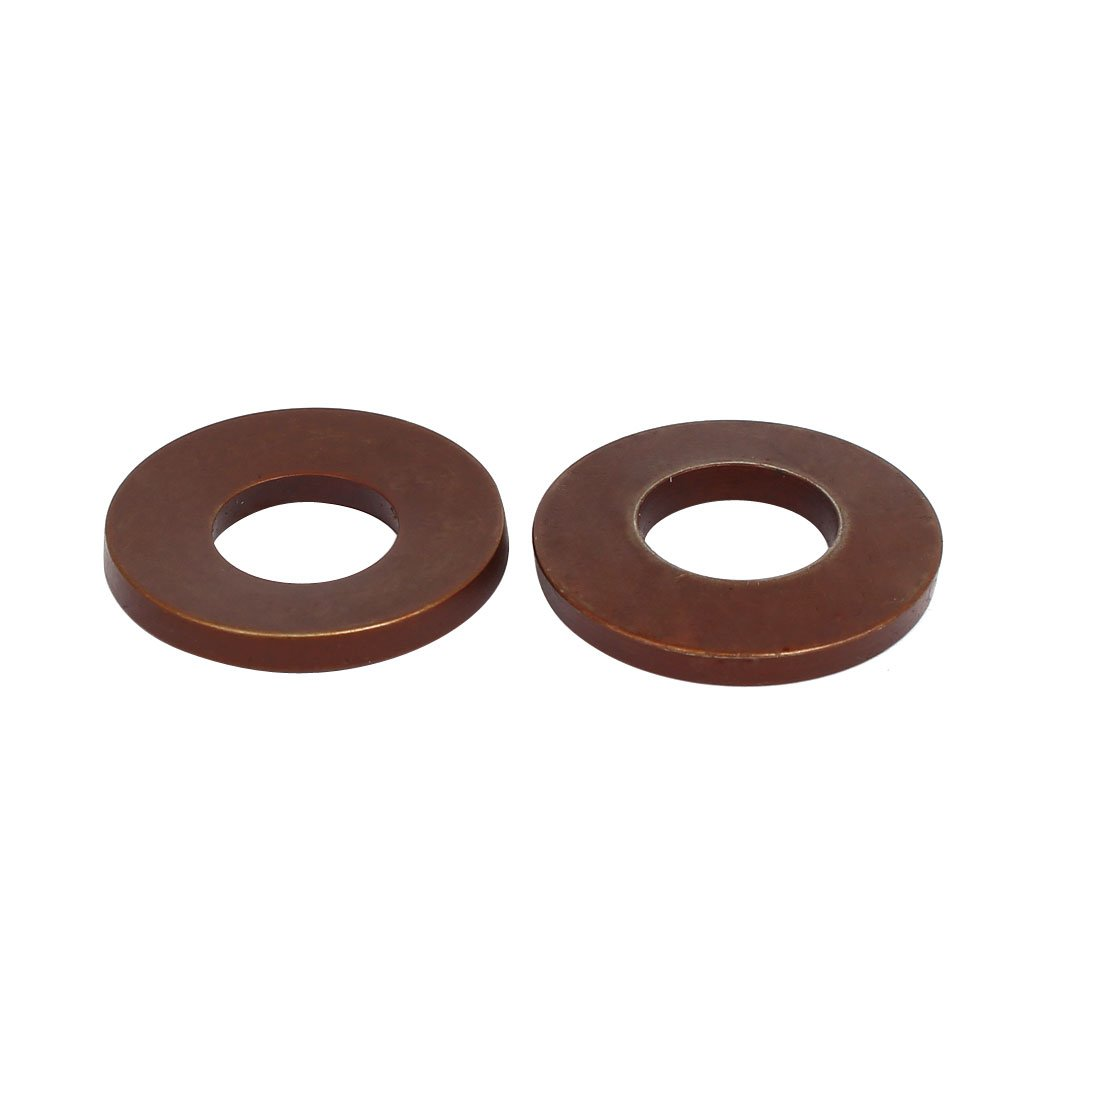 uxcell 42mm Outer Dia 19mm Inner Dia 4.5mm Thickness Metric Belleville Spring Washer 2pcs